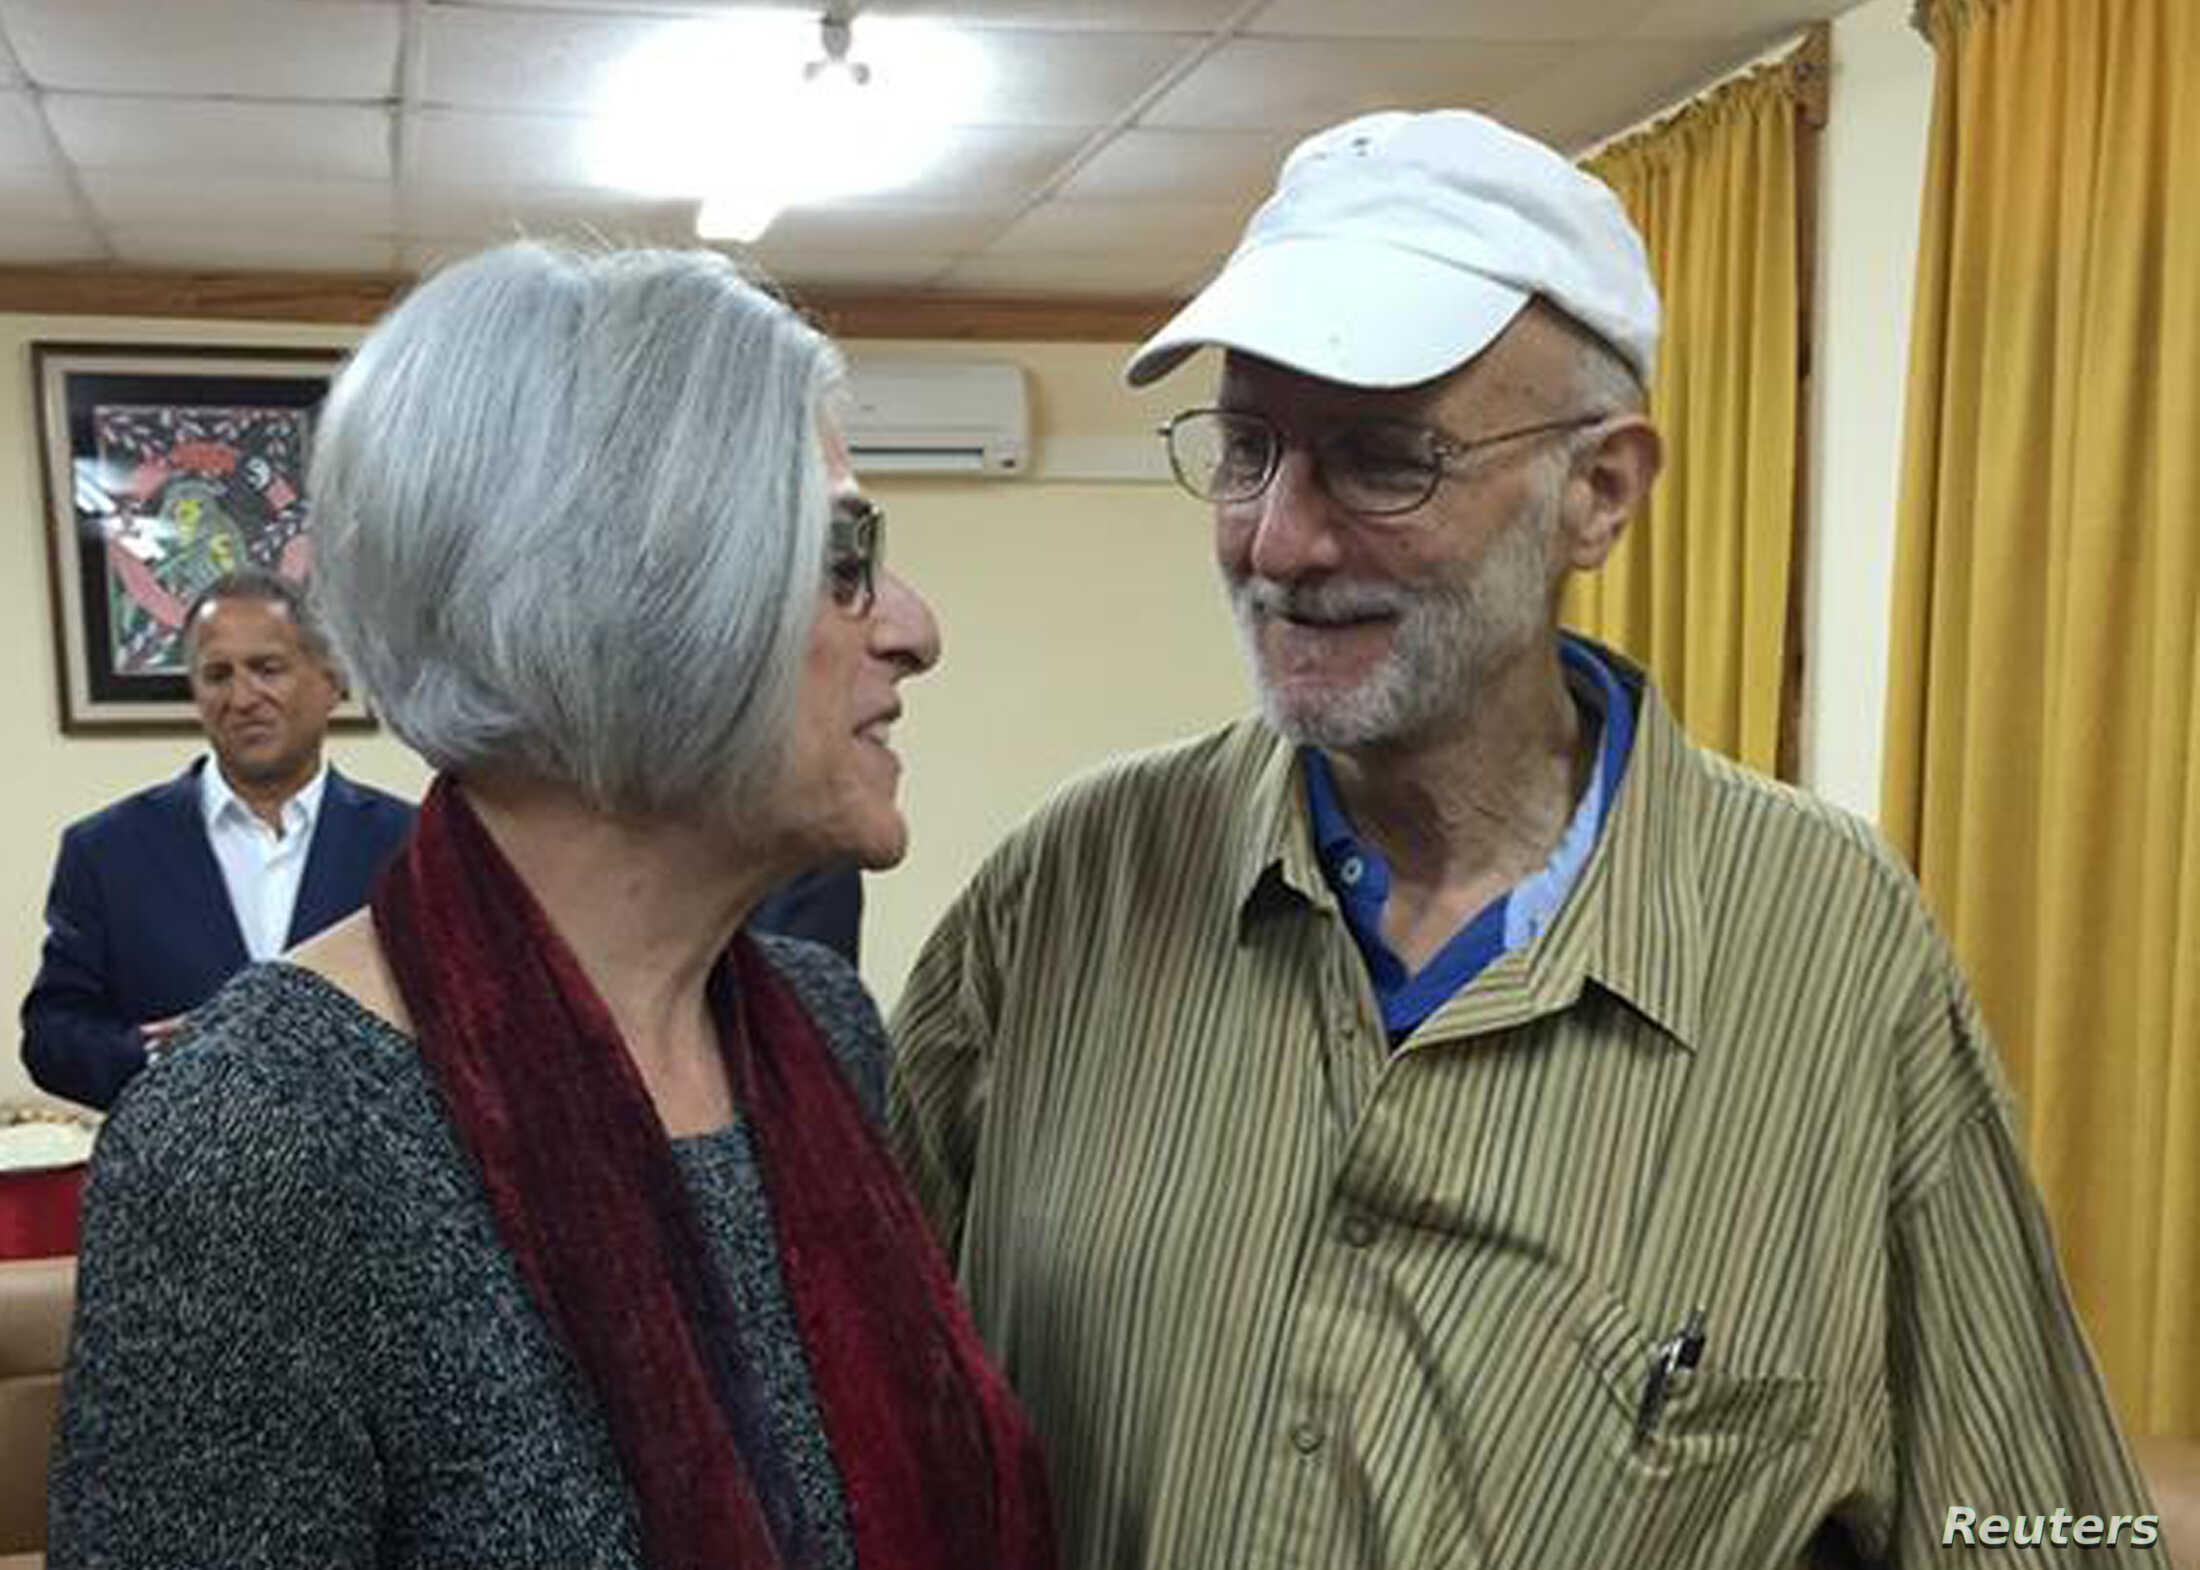 American aid worker Alan Gross (R) speaks with his wife Judy shortly before leaving Havana on December 17, 2014 in this photo tweeted by U.S. Sen. Jeff Flake (R-AZ). U.S. President Barack Obama was set to announce a shift in policy toward Cuba on Wed...